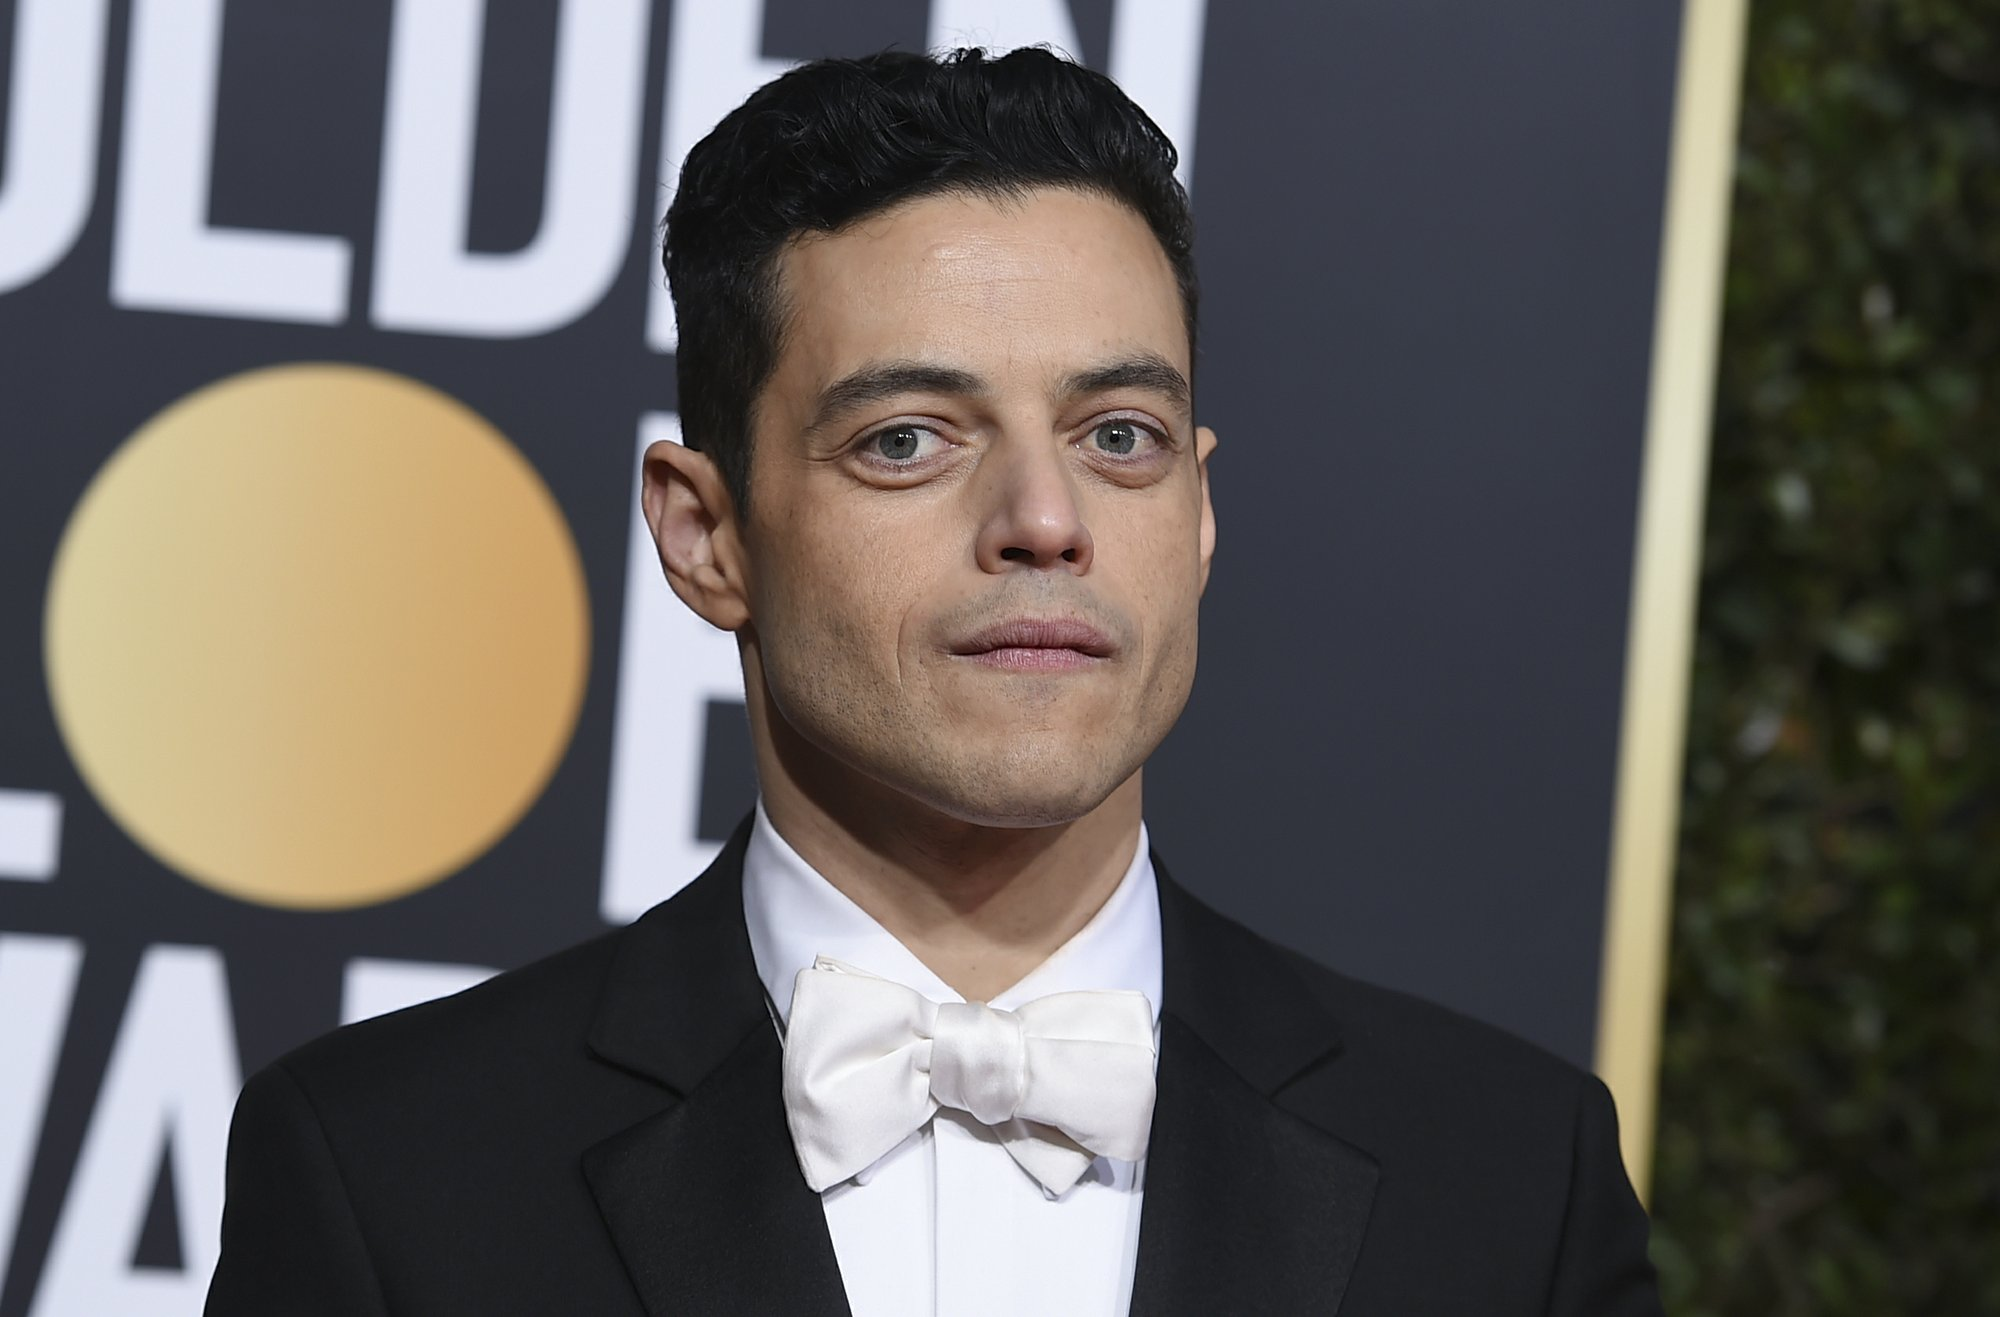 Rami Malek arrives at the 76th annual Golden Globe Awards at the Beverly Hilton Hotel on Sunday, Jan. 6, 2019, in Beverly Hills, California. Photo: AP